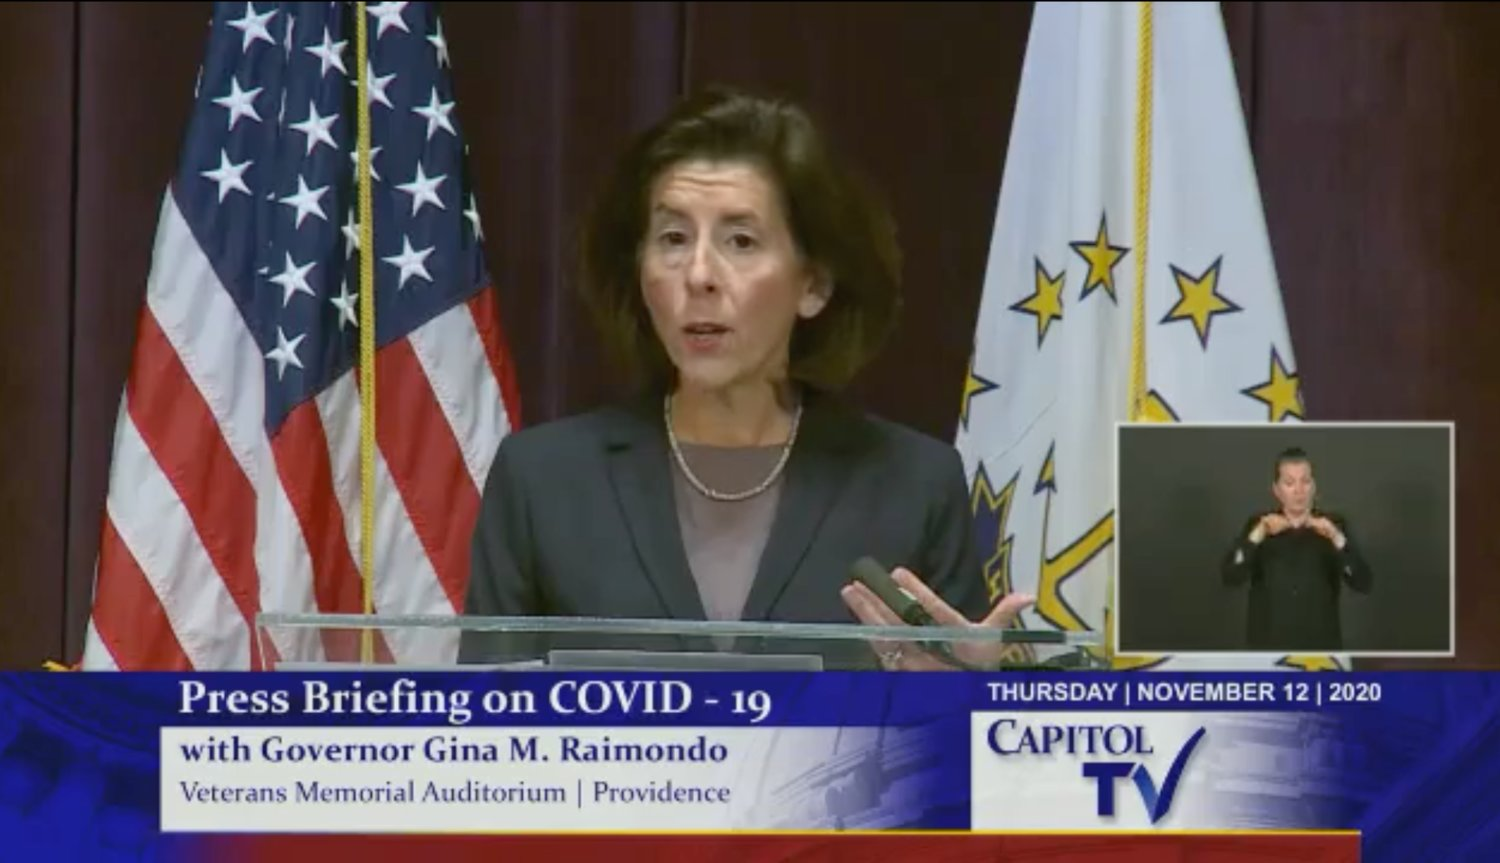 Gov. Gina Raimondo, speaking during a Nov. 12 briefing.